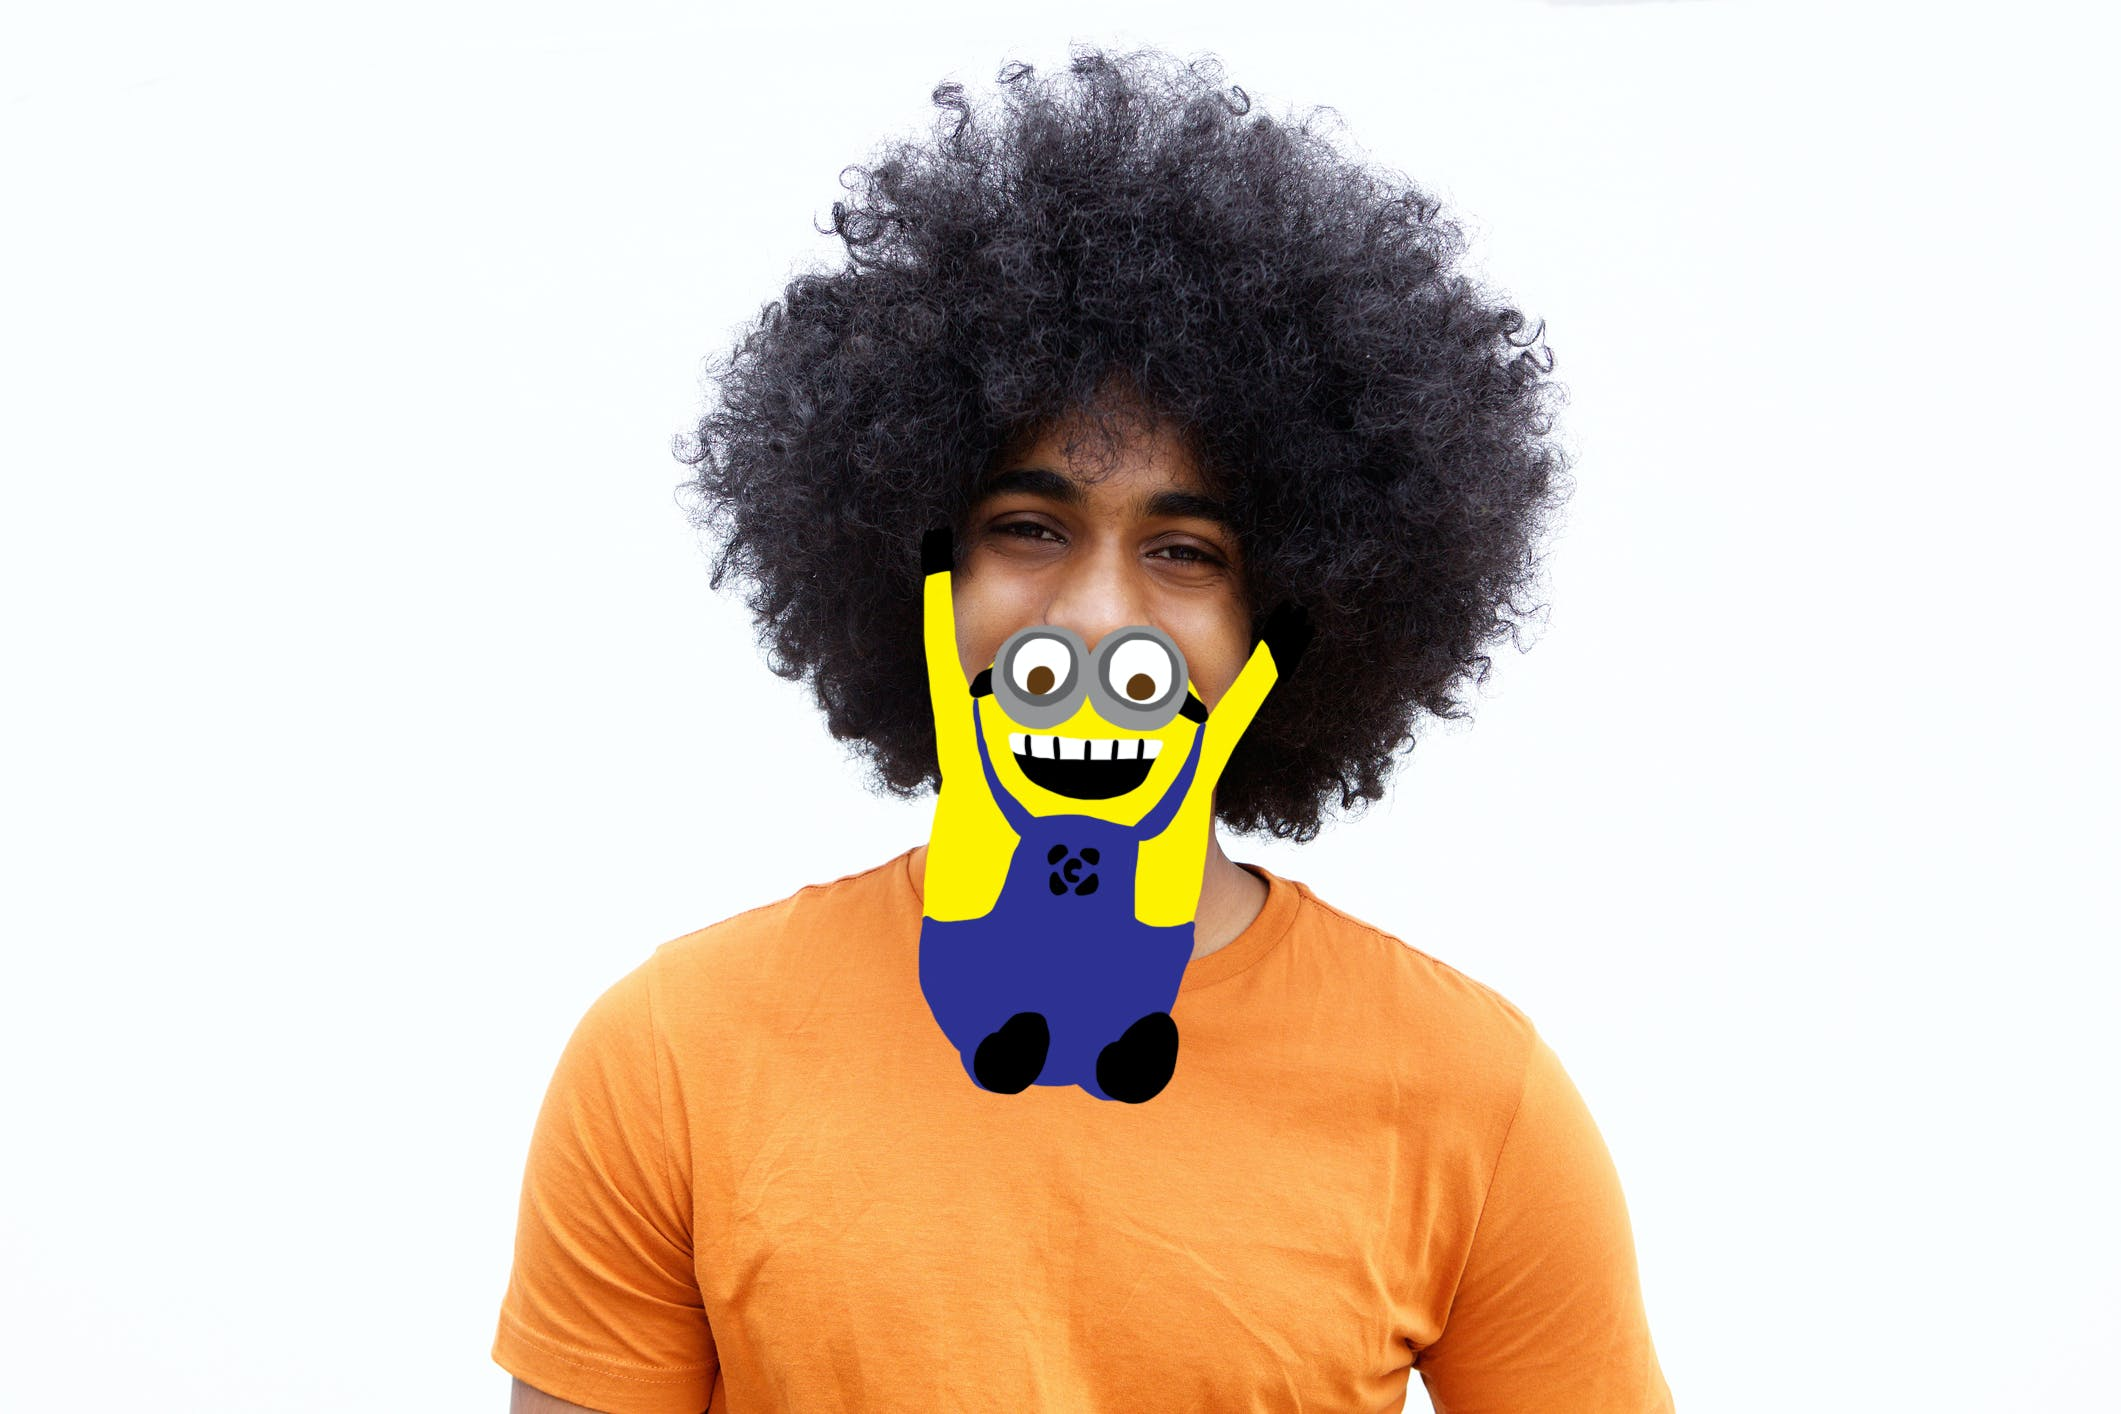 Dude with a minion as a beard